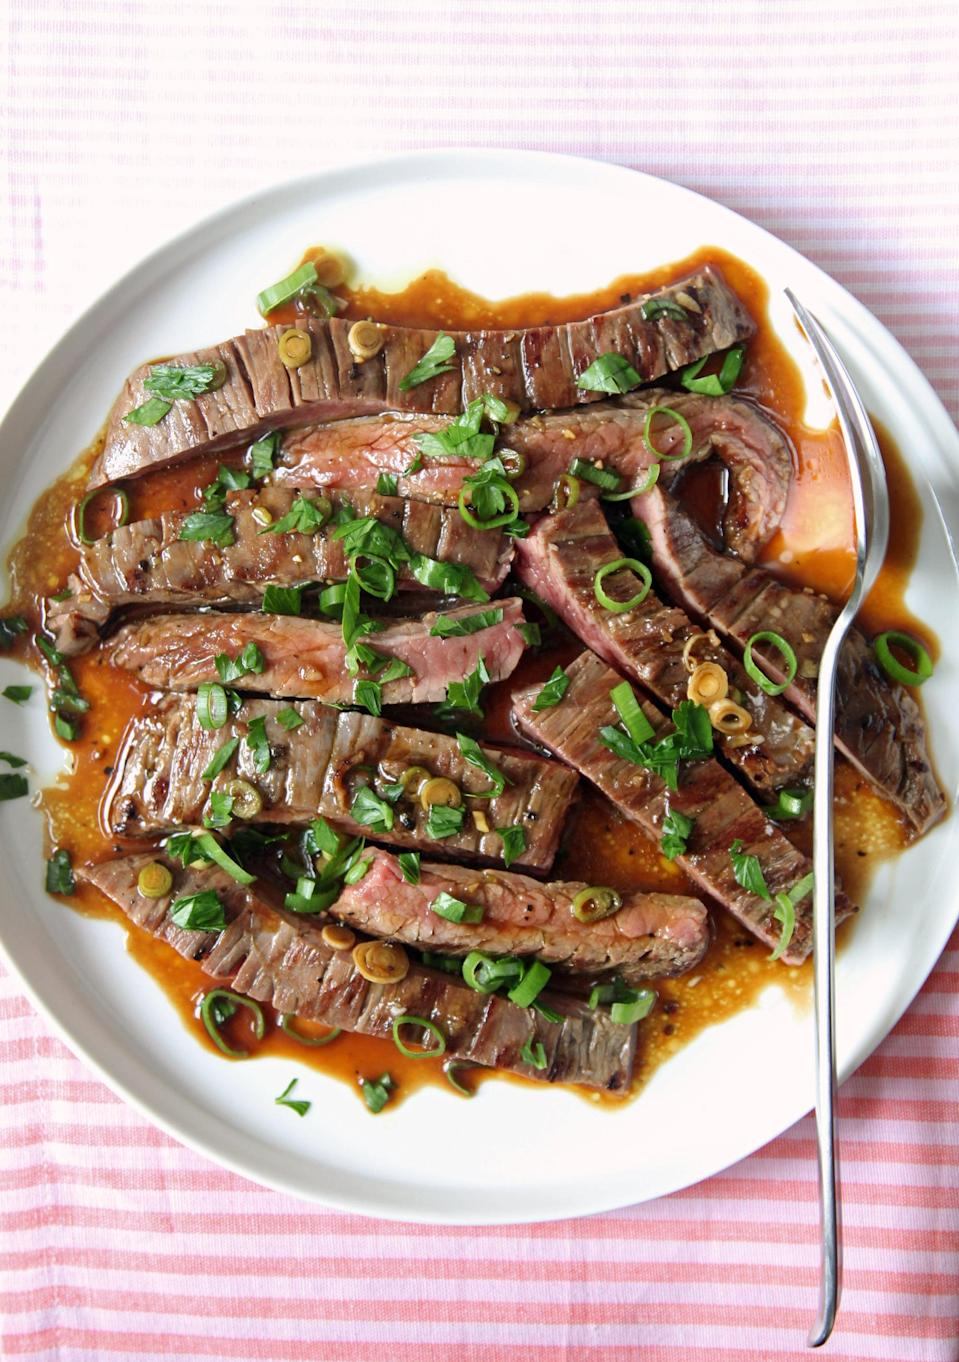 "<p><strong>Get the recipe</strong>: <a href=""https://www.popsugar.com/food/Easy-Grilled-Marinated-Skirt-Steak-Recipe-35539837"" class=""link rapid-noclick-resp"" rel=""nofollow noopener"" target=""_blank"" data-ylk=""slk:postgrill marinated skirt steak"">postgrill marinated skirt steak</a></p>"